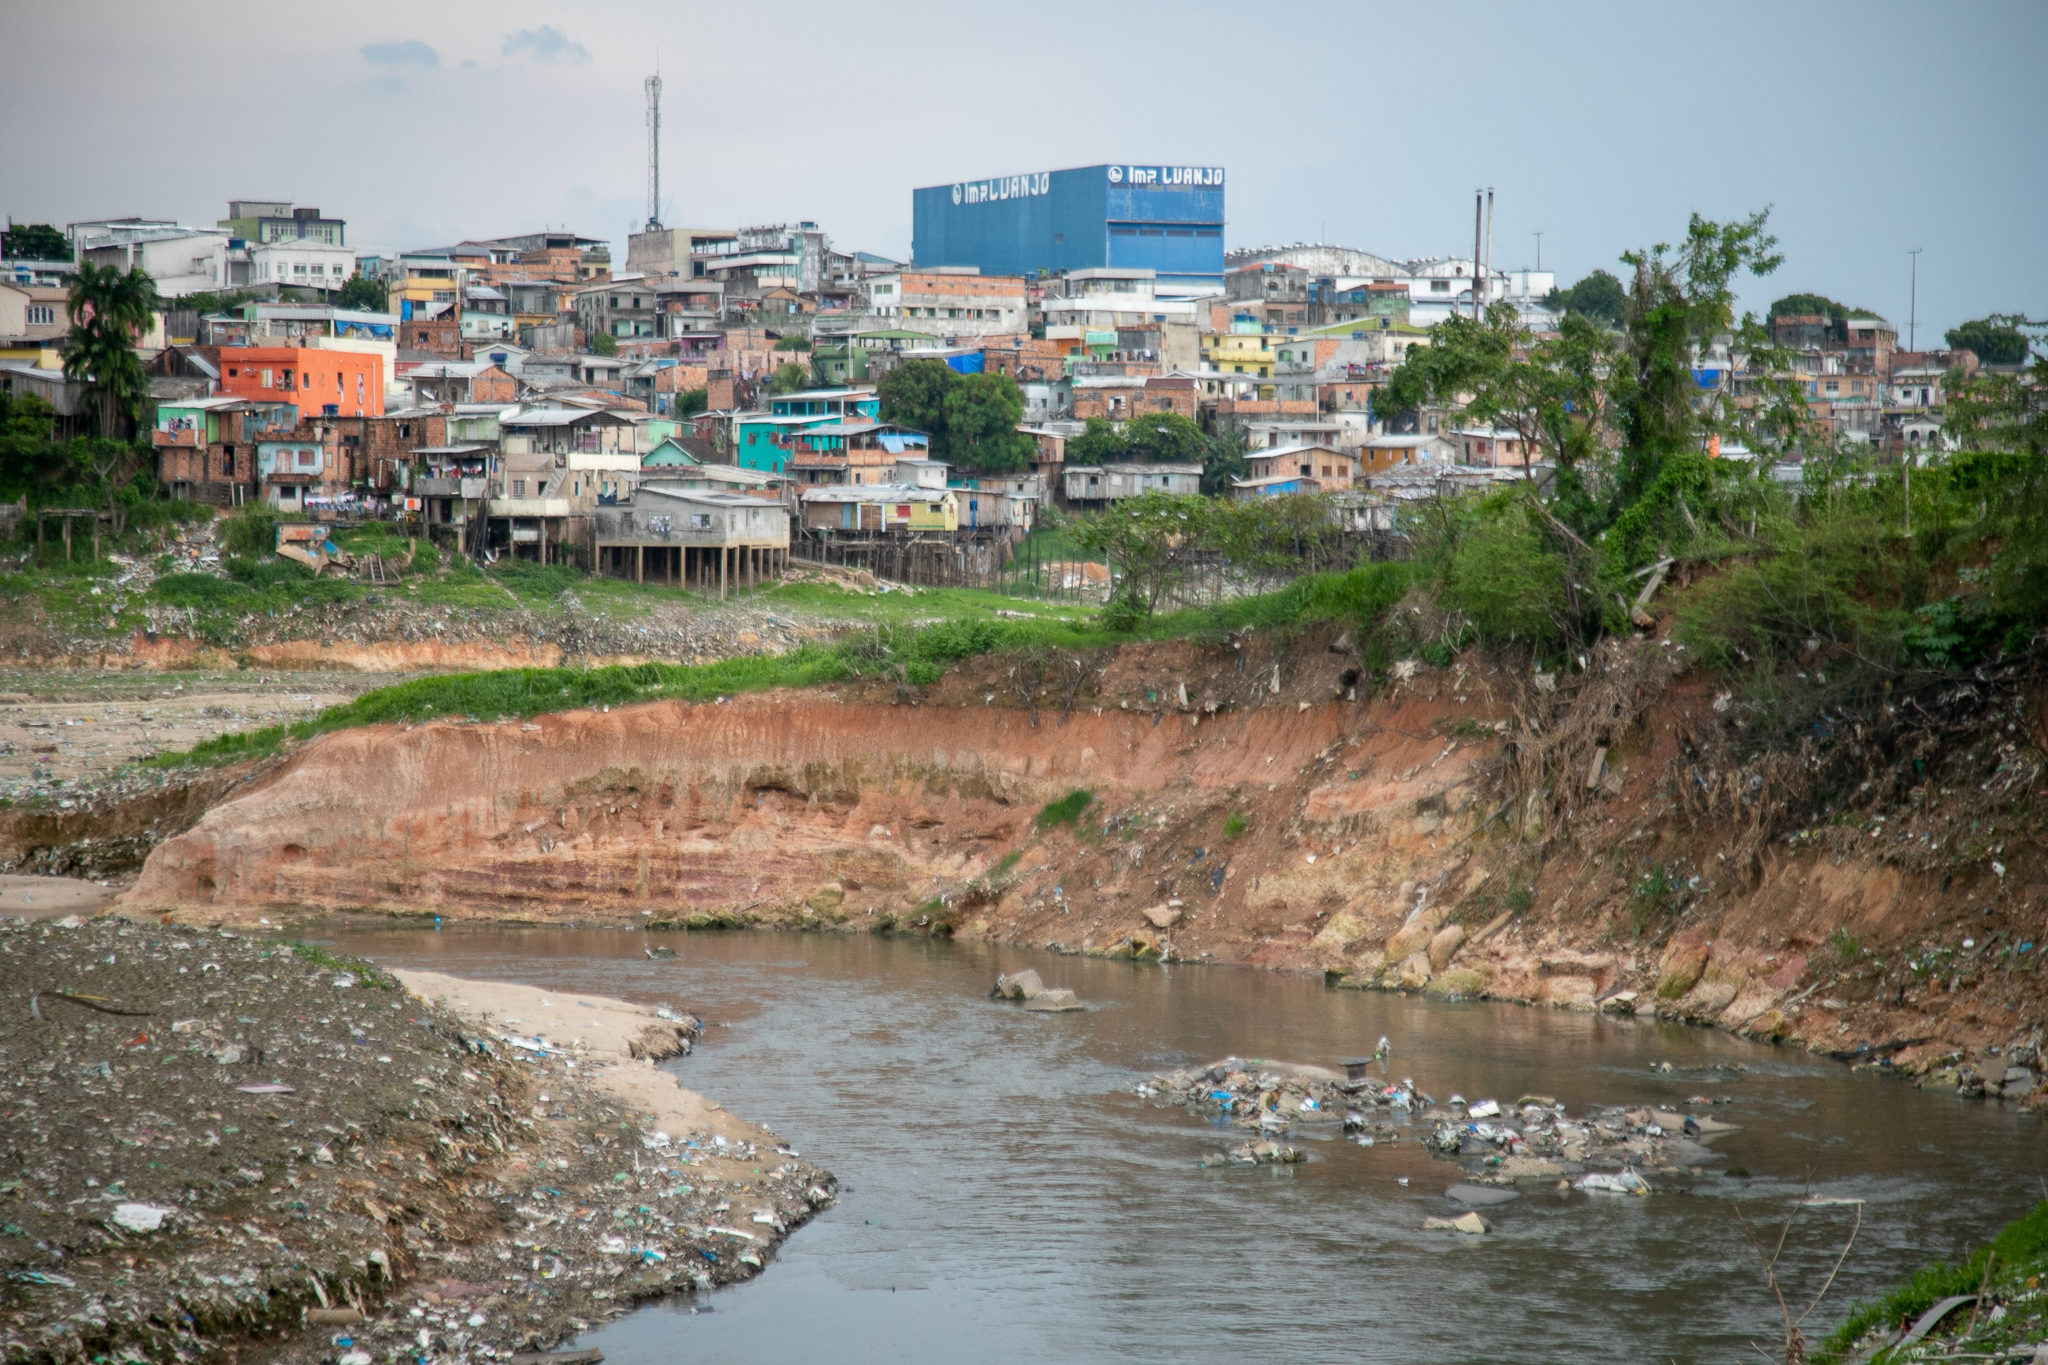 Overview of Educandos River, in the Southern area of Manaus. Image by César Nogueira.